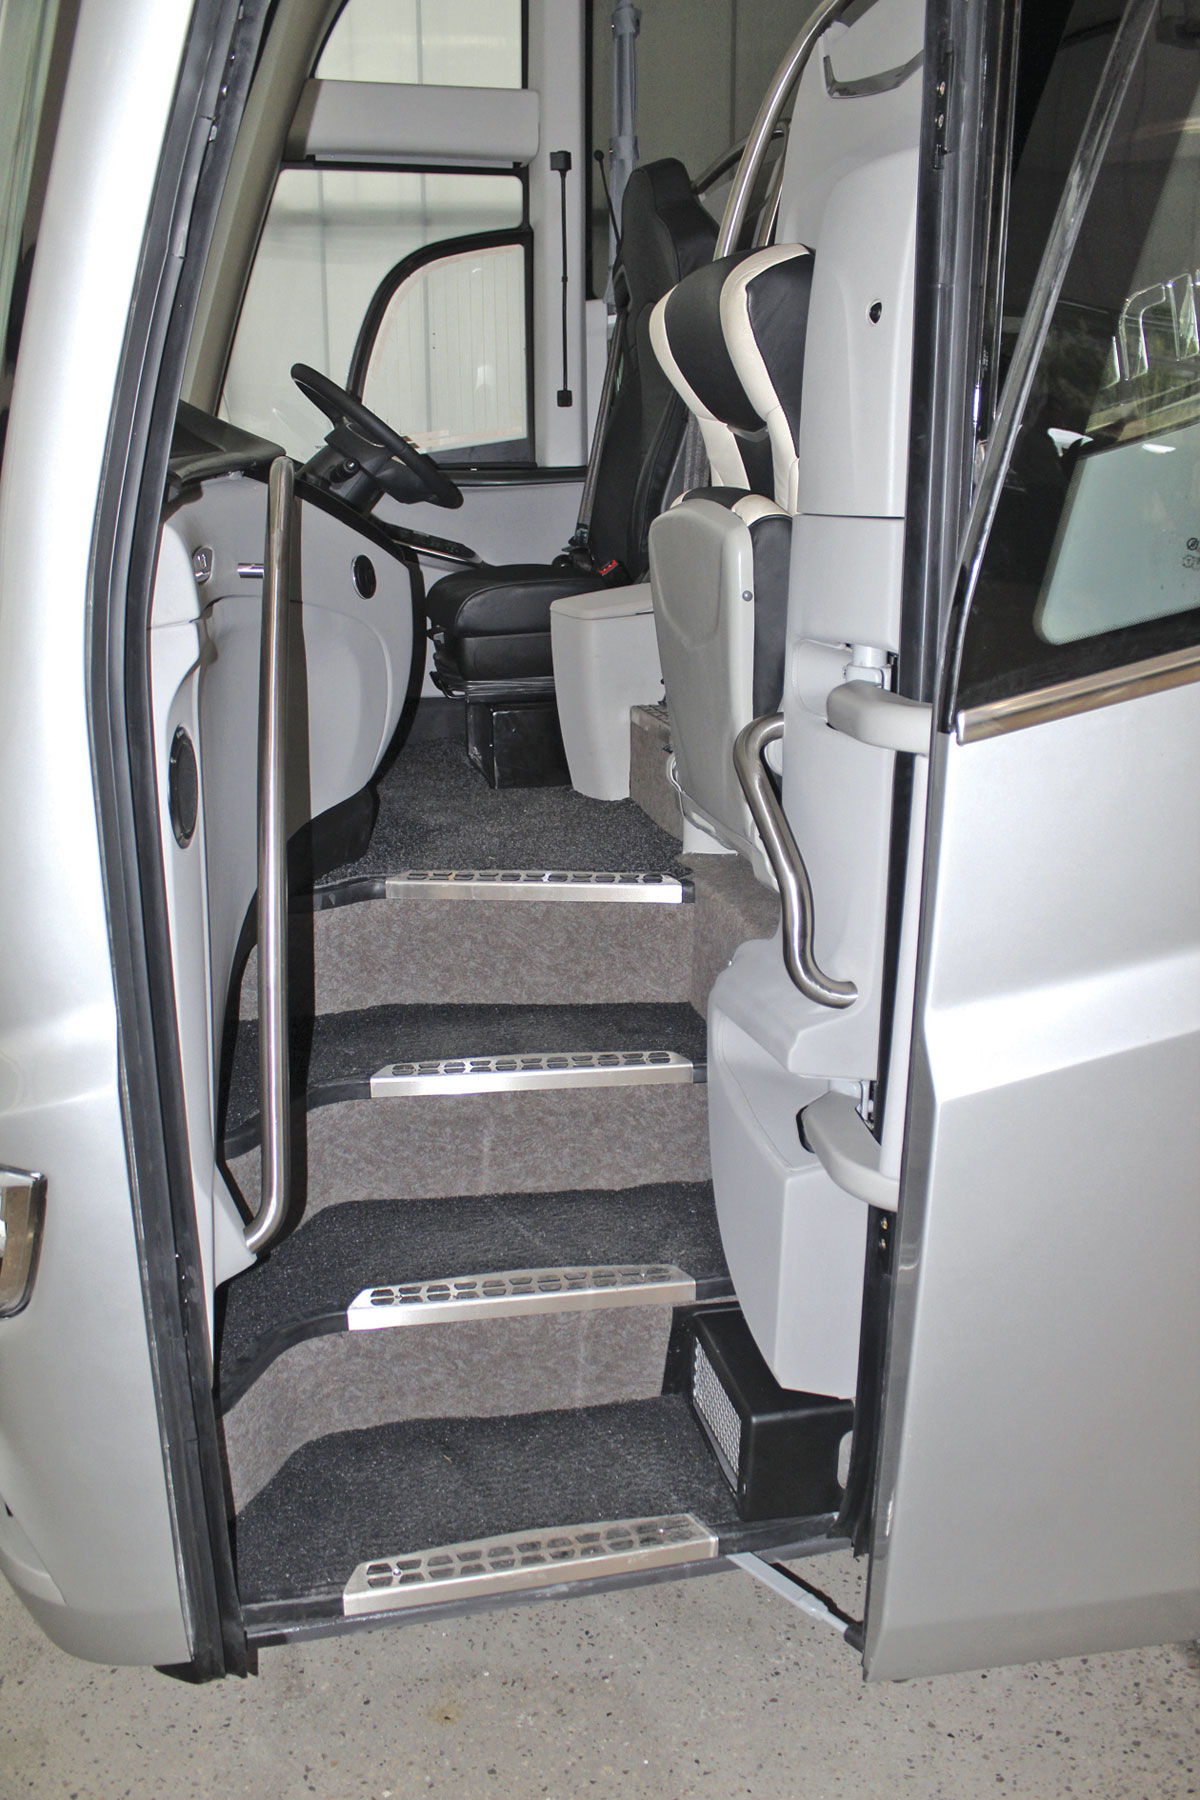 The entrance arrangement on the UK destined i8 demonstrator we were shown